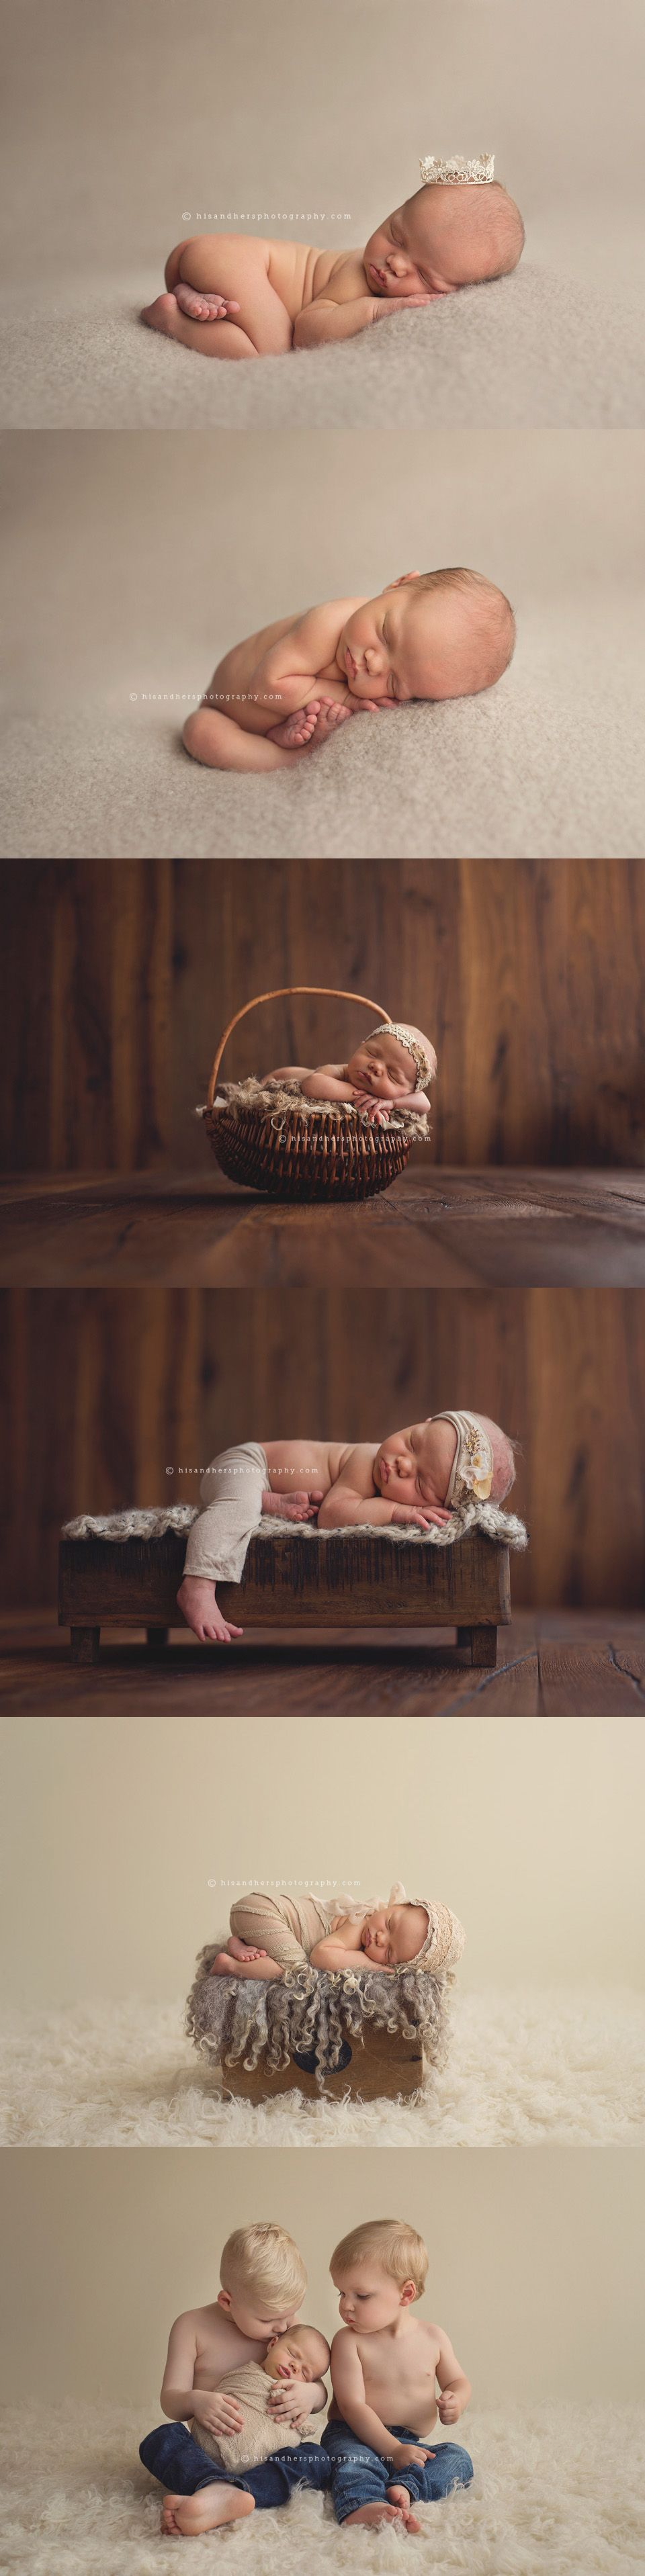 Newborn | Sutton, 8 days new